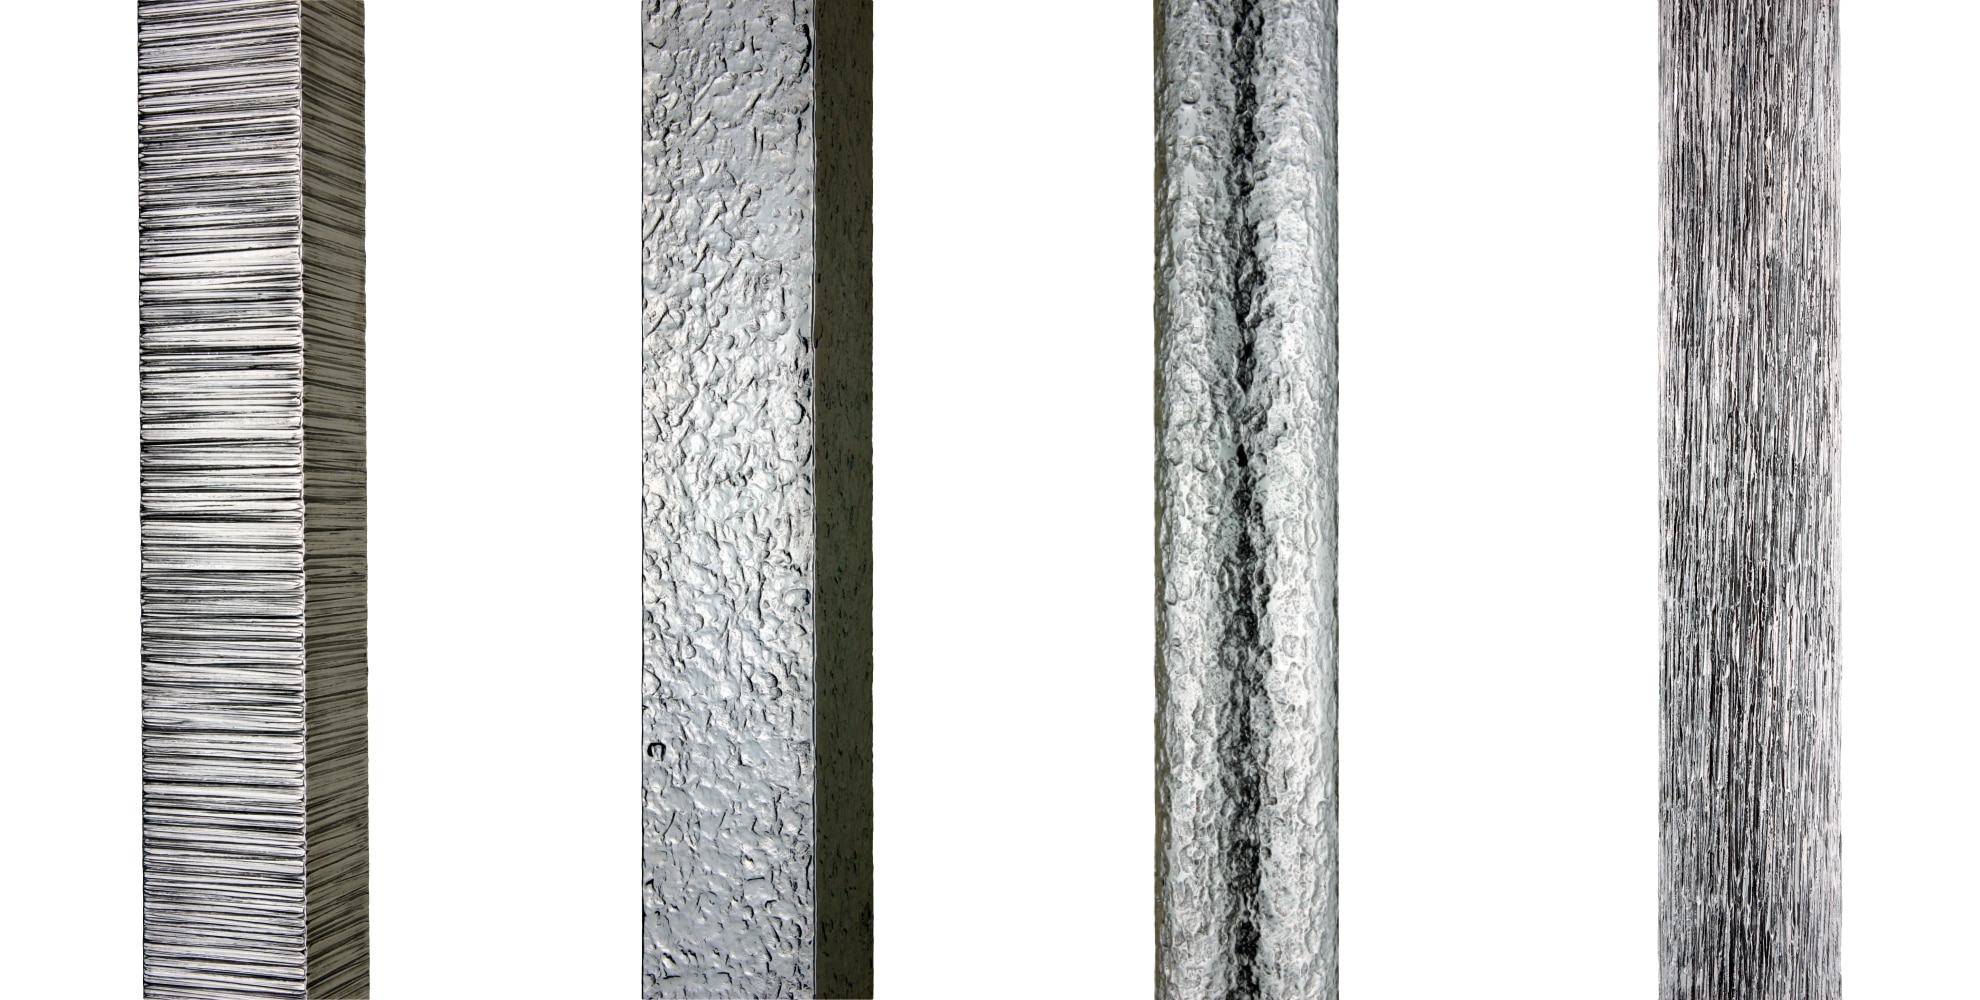 SCULPTED POLISHED HARDWARE (main)